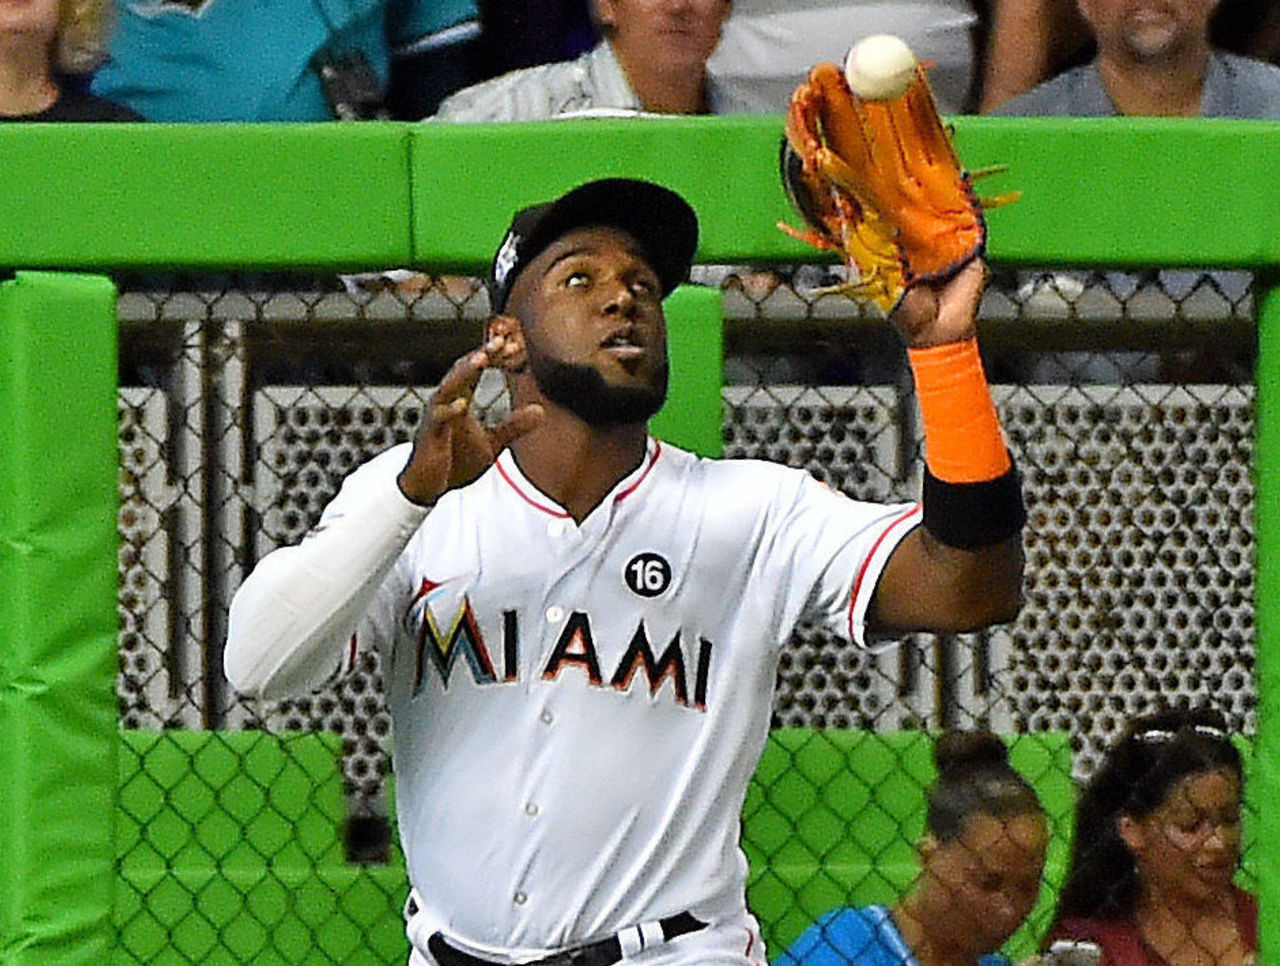 Cropped 2017 04 14t003732z 2075458657 nocid rtrmadp 3 mlb new york mets at miami marlins